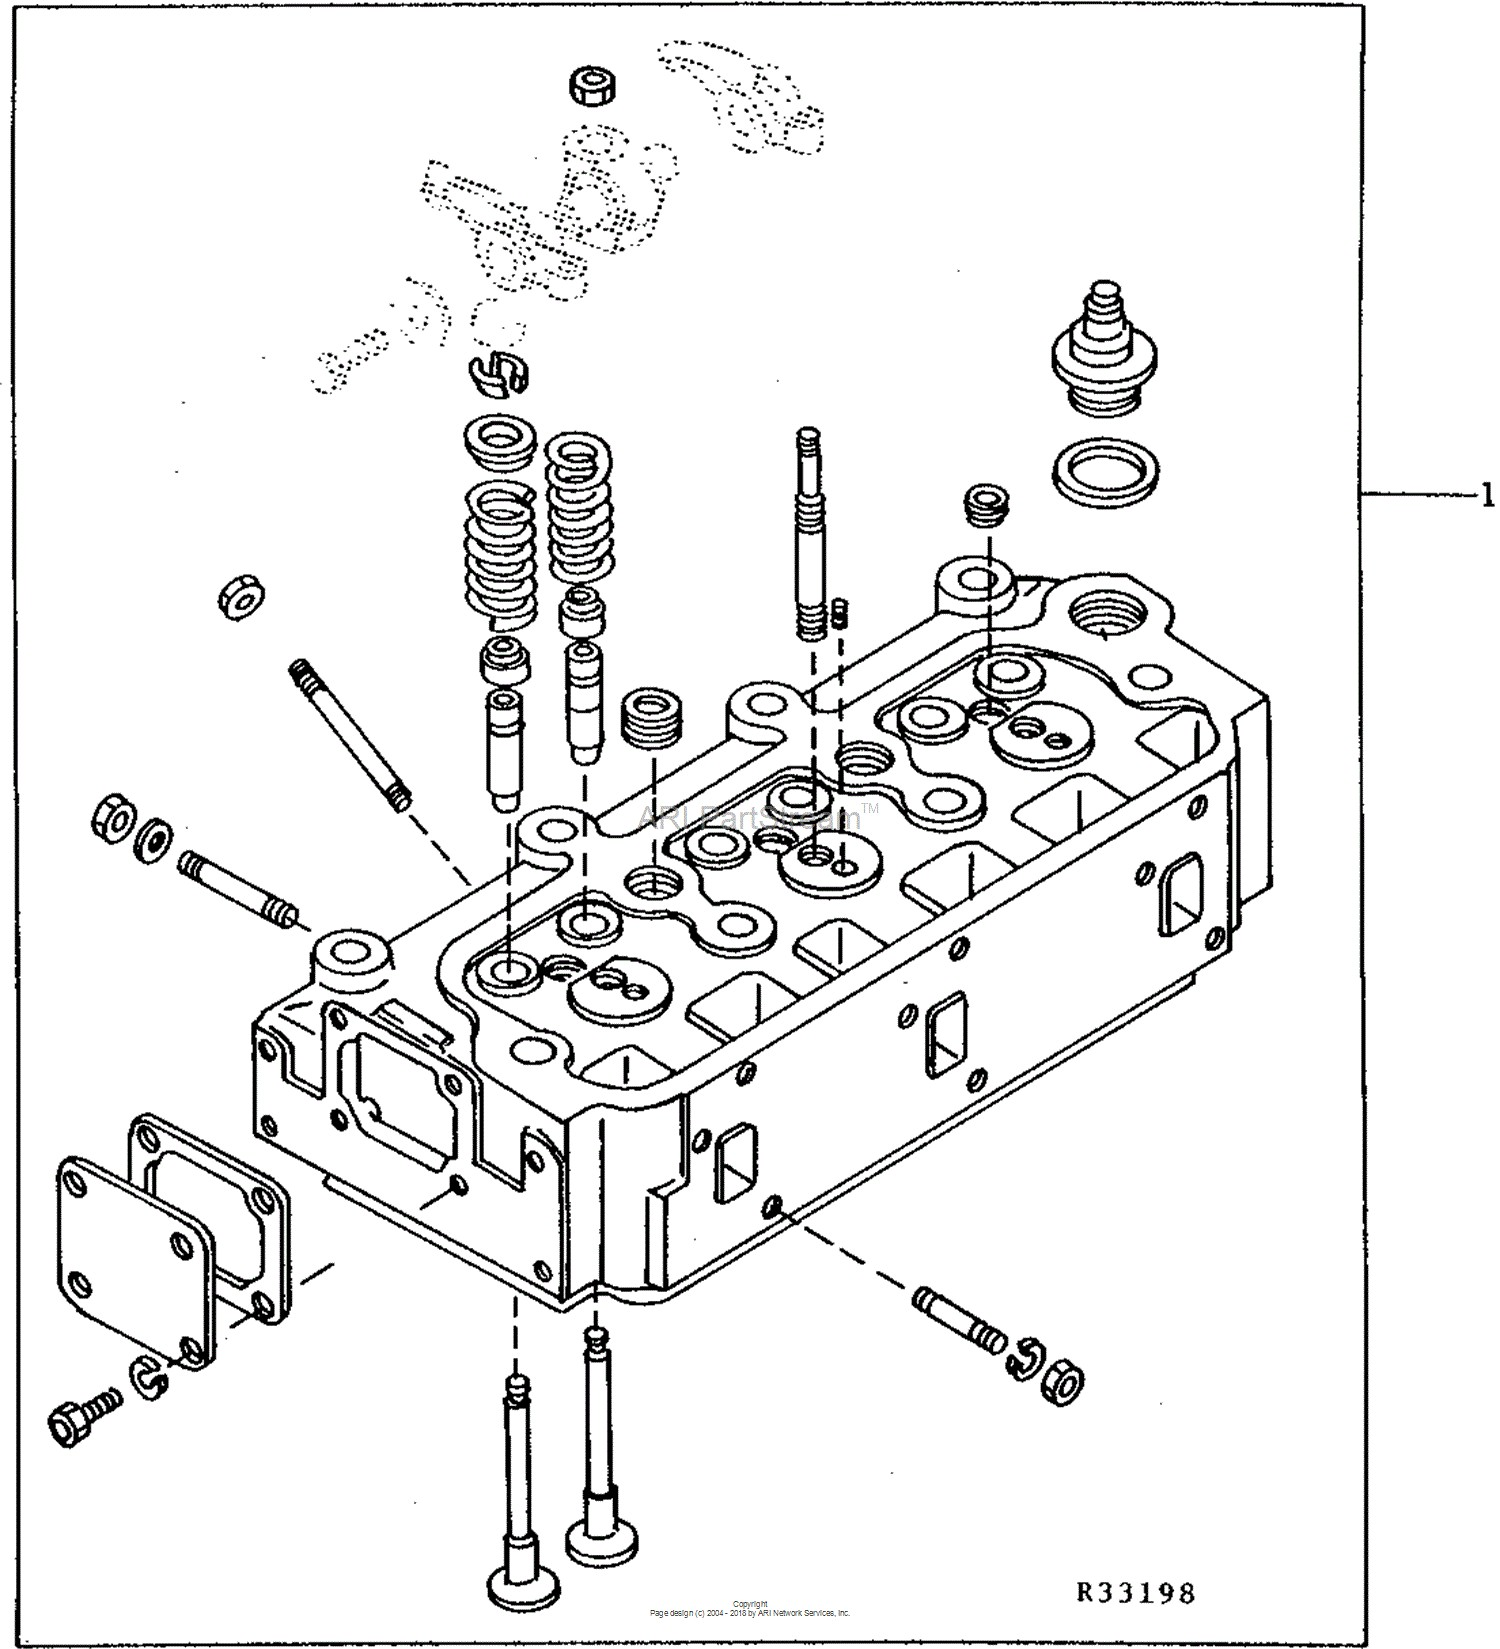 John Deere D105 Engine Diagram